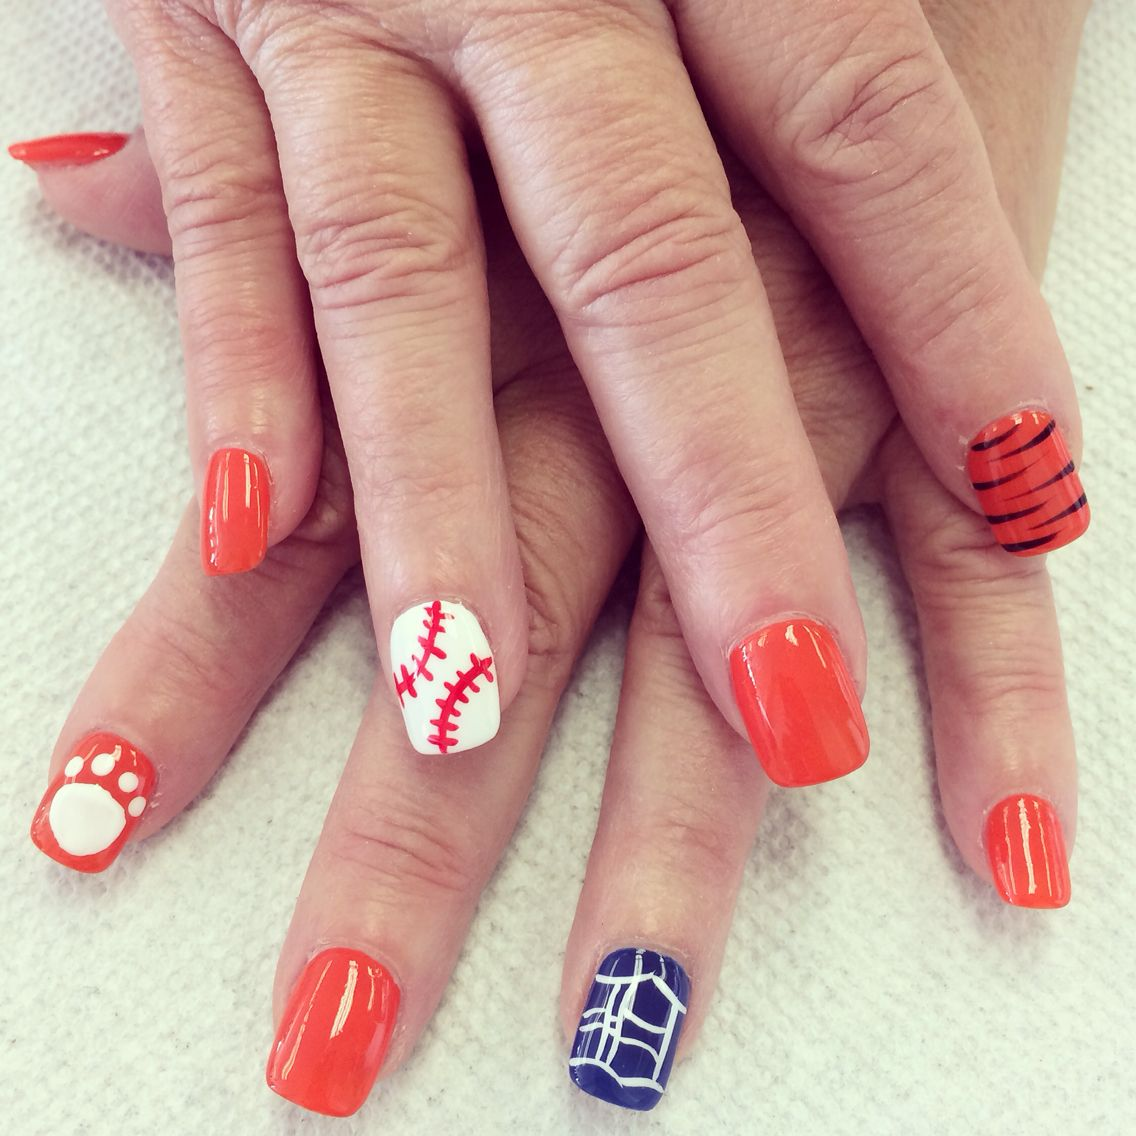 Detroit Tiger nail art design | nails | Pinterest | Tiger nail art ...